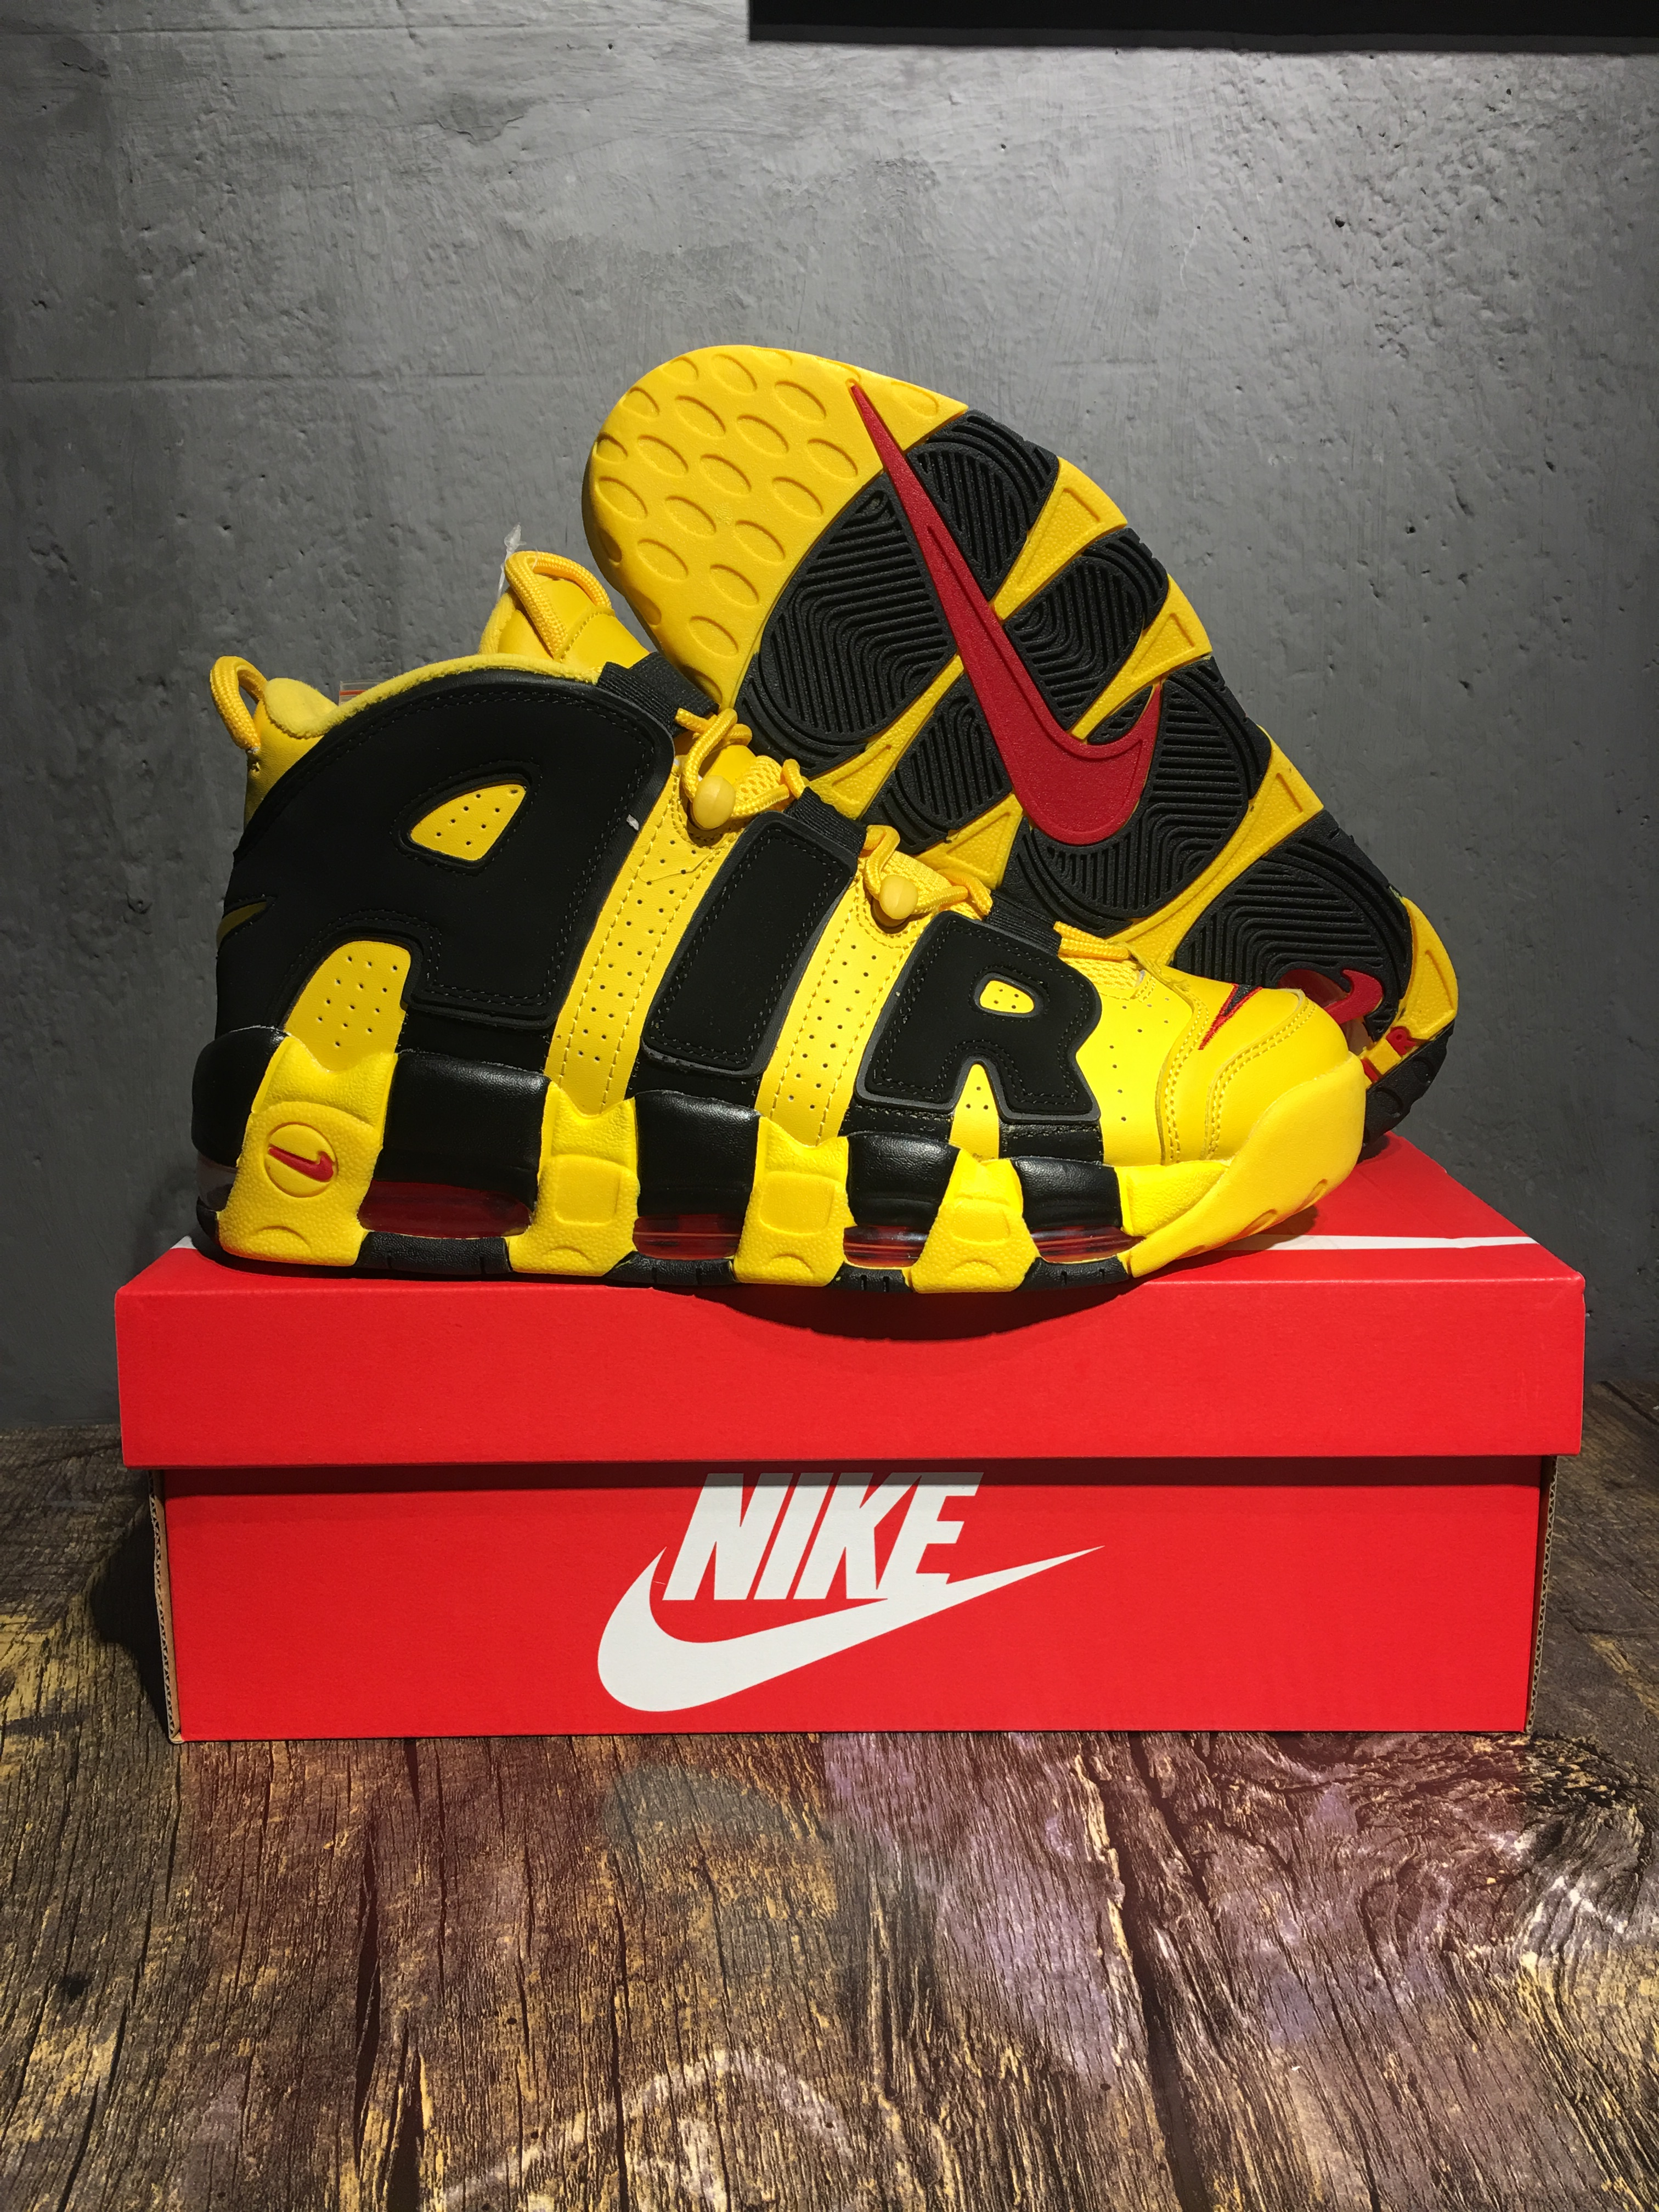 Nike Air Uptempo Yellow Black Shoes For Women